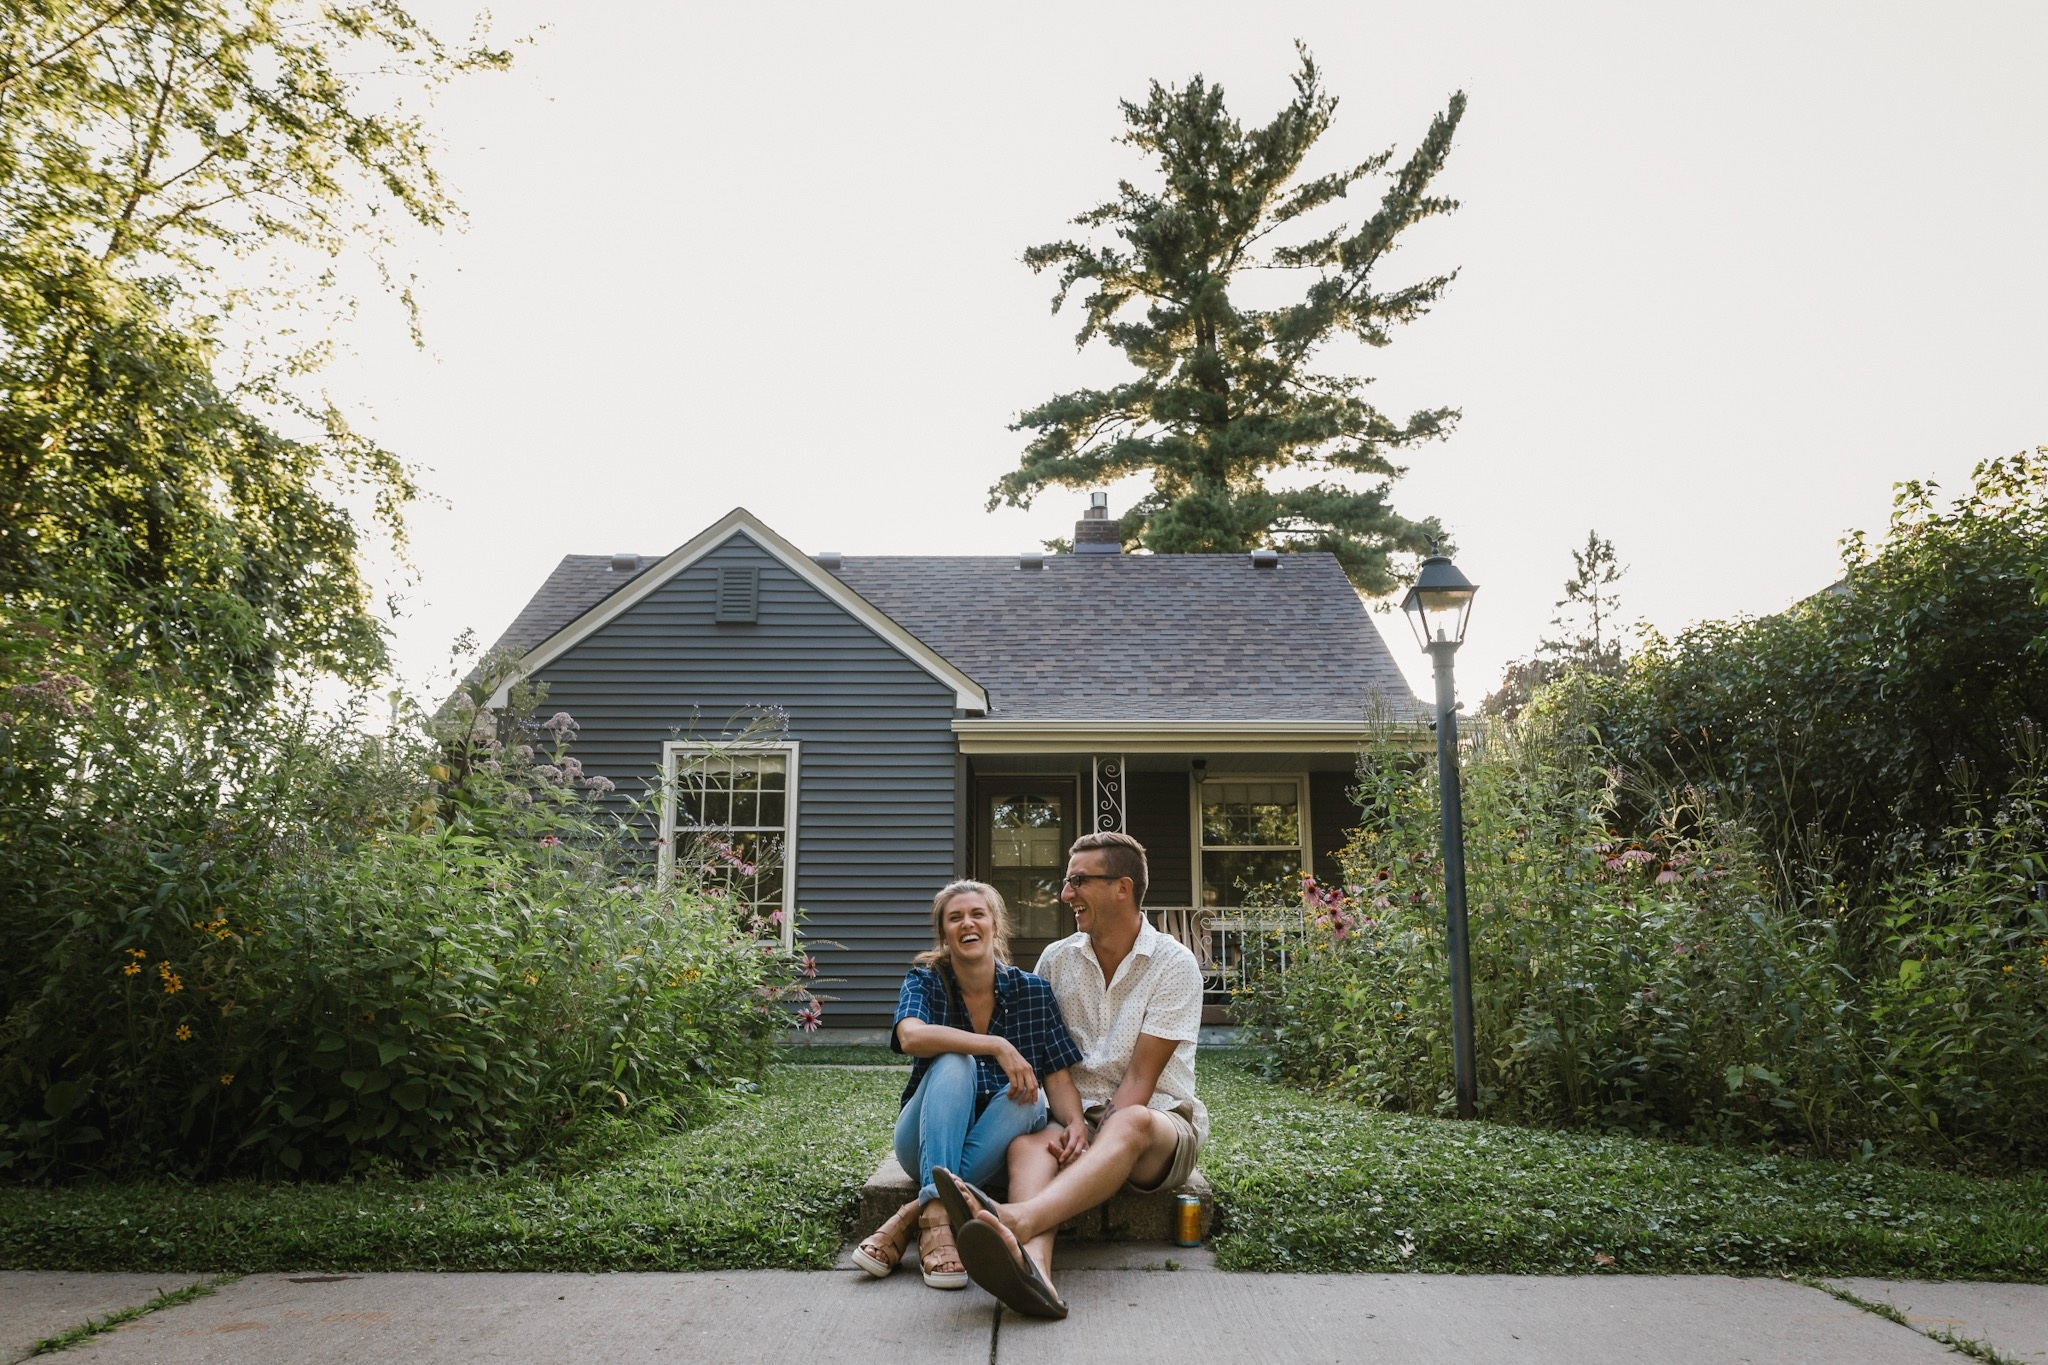 Us at our home, August 2019. Photo by    Joe and Jen Photo   .